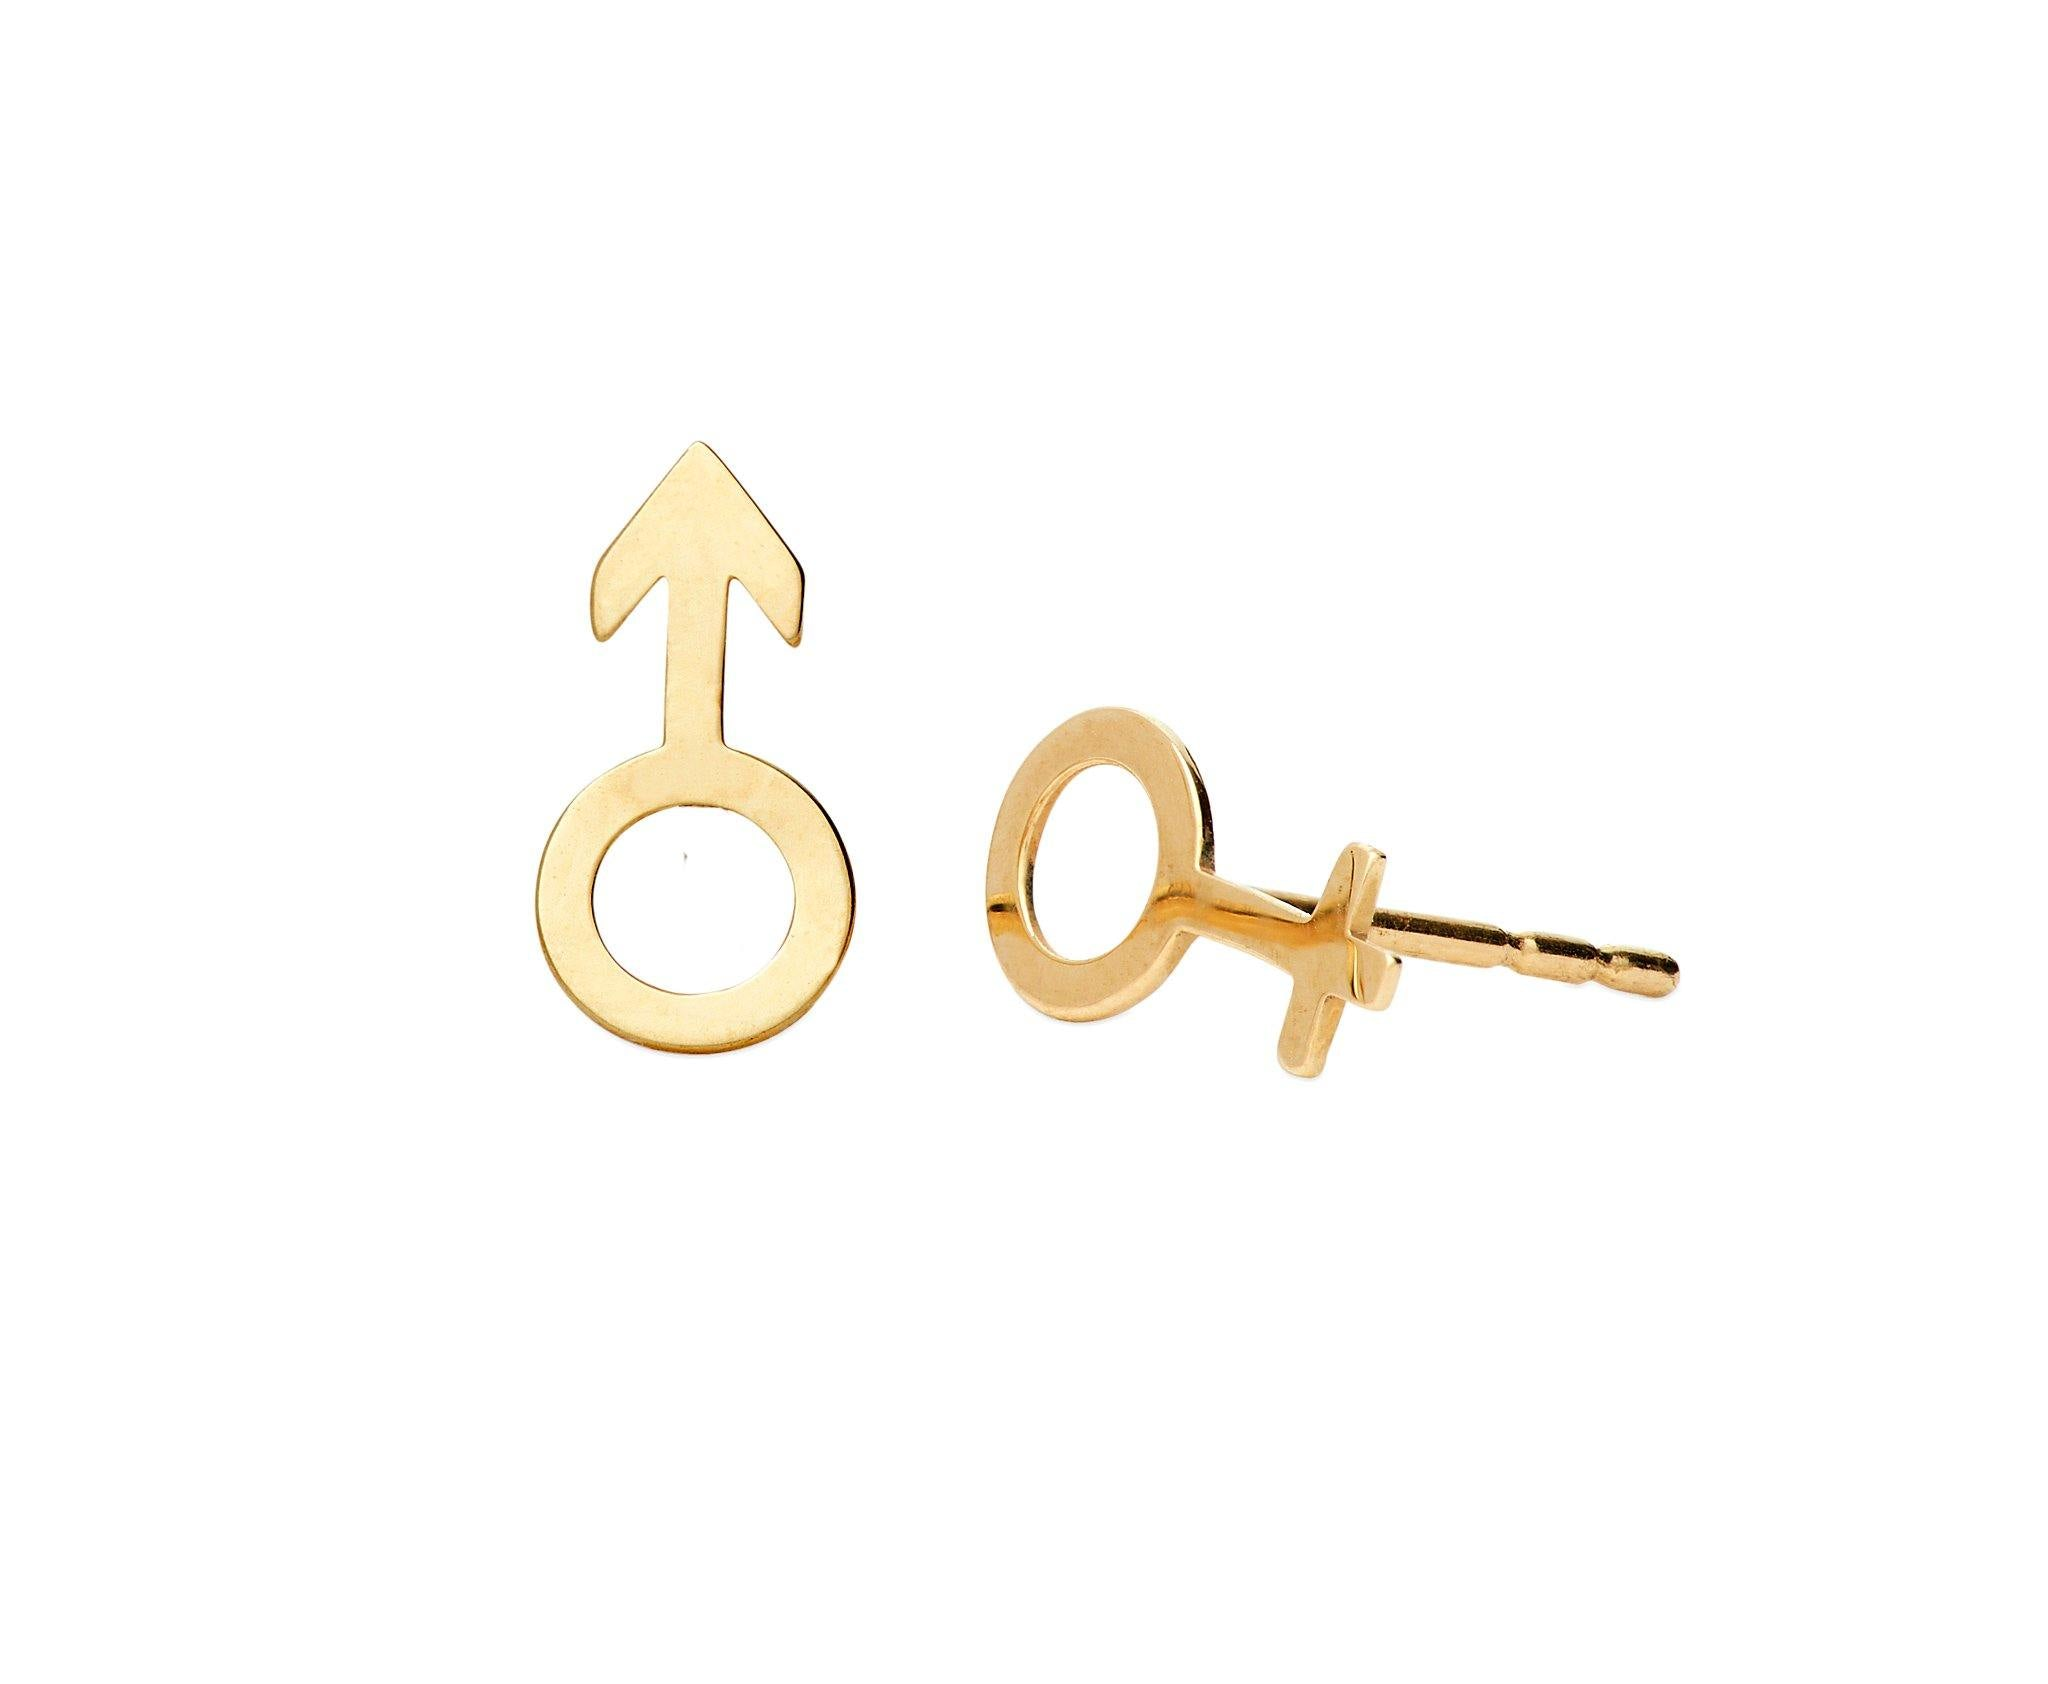 Pride Earrings - InclusiveJewelry